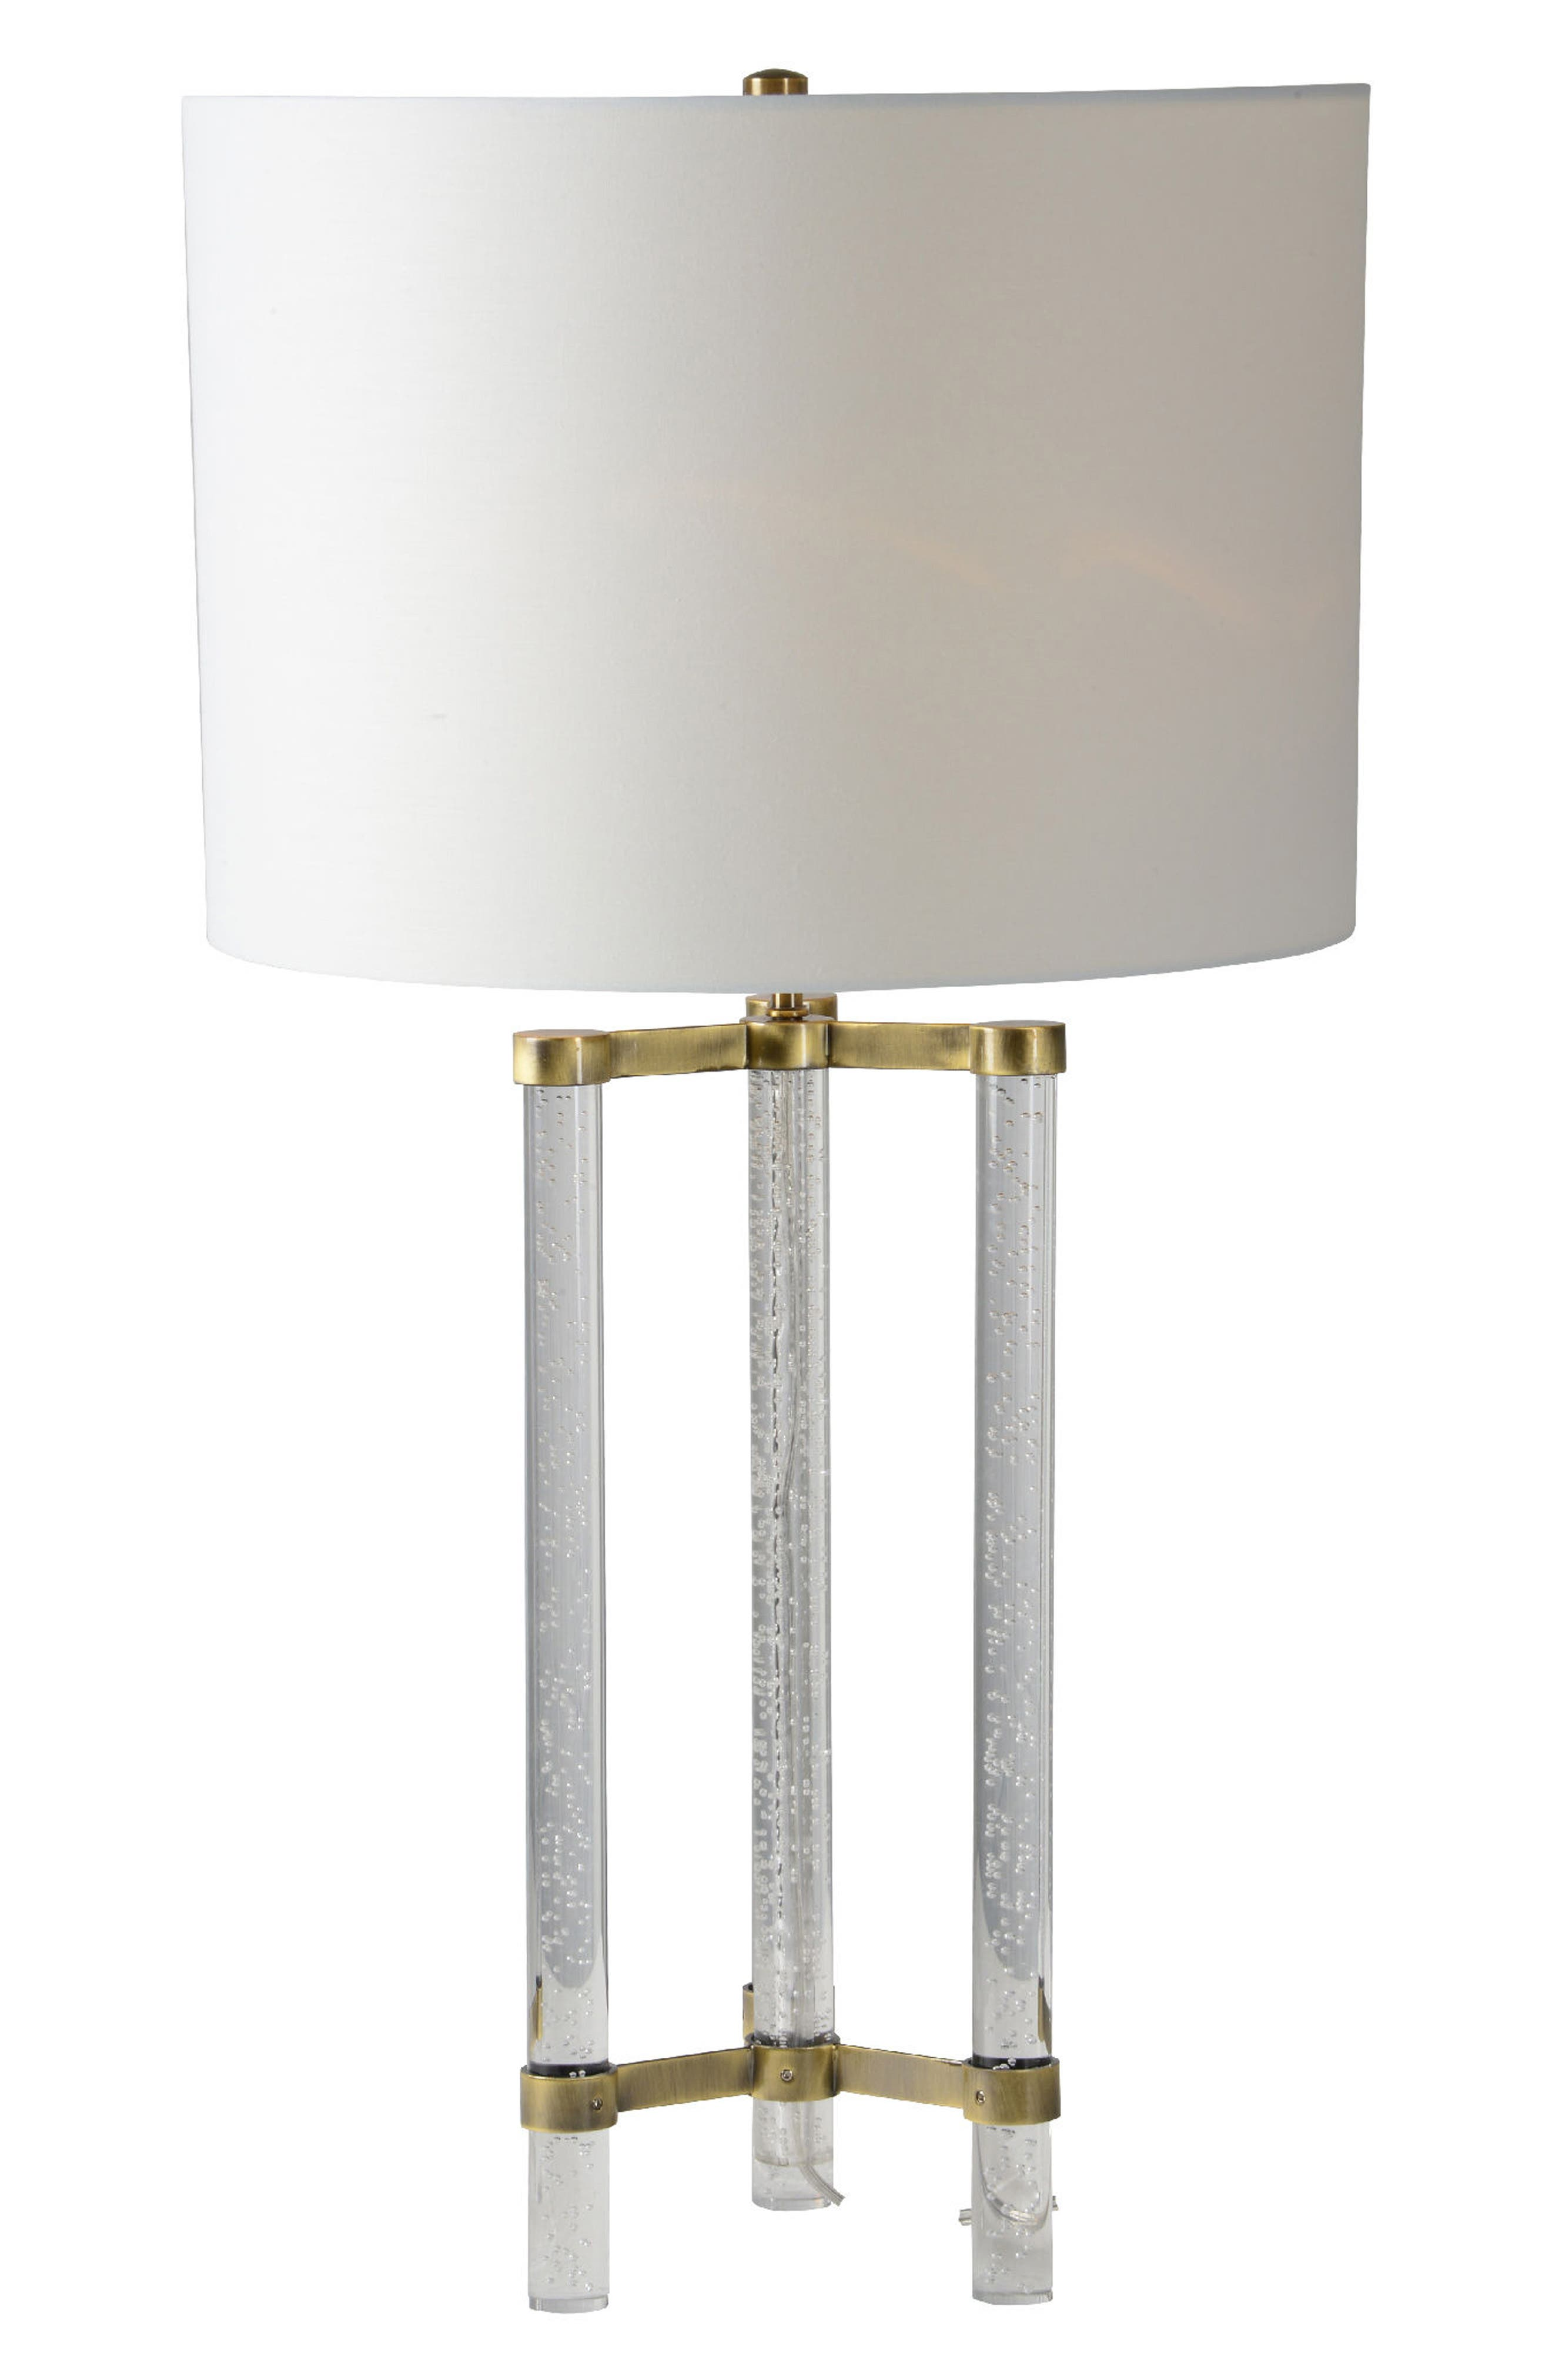 Dais Table Lamp,                             Main thumbnail 1, color,                             710